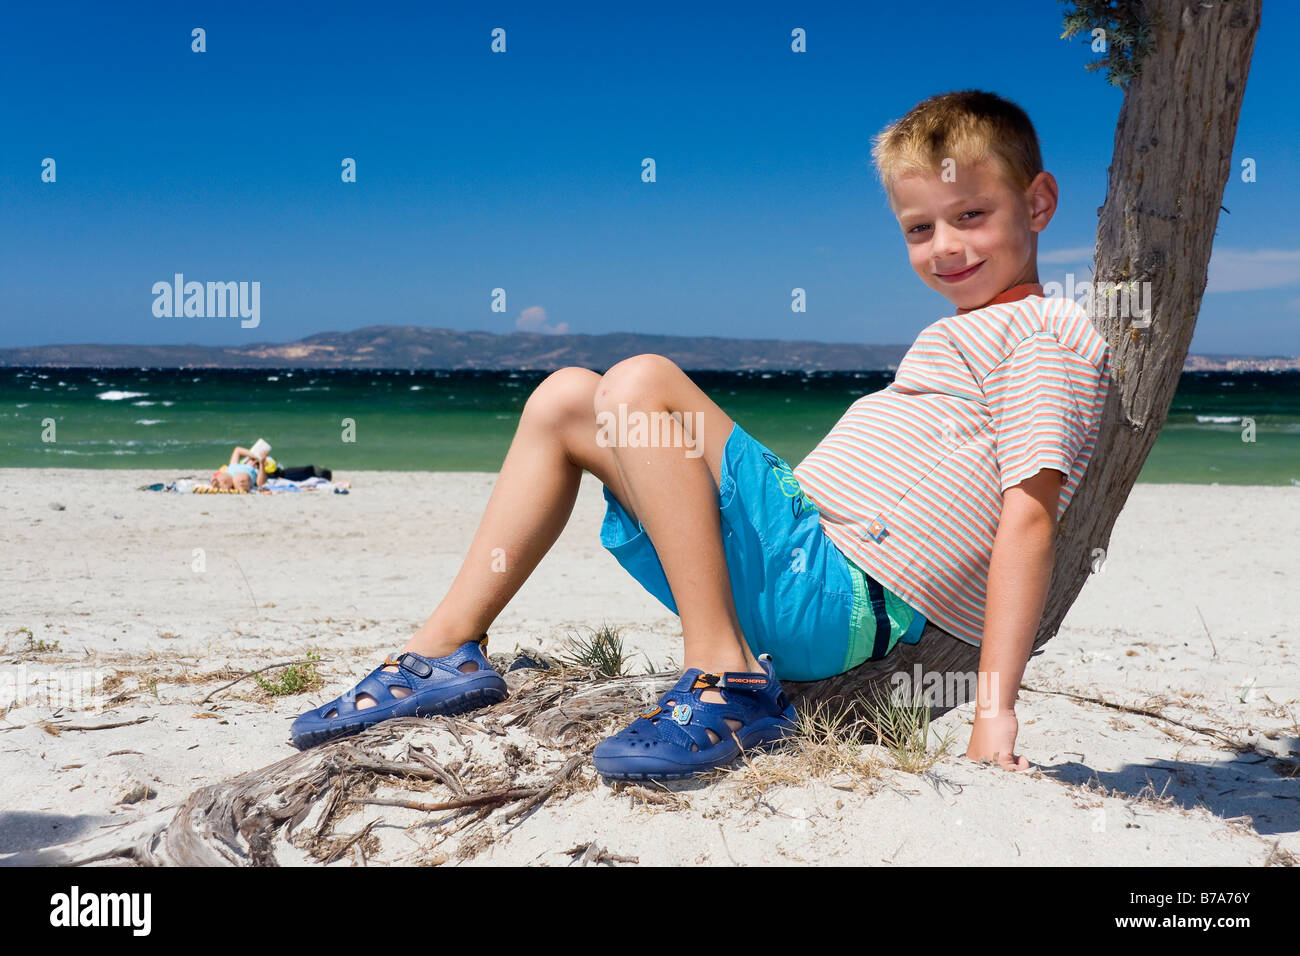 6-year-old boy leaning against a tree at the beach - Stock Image